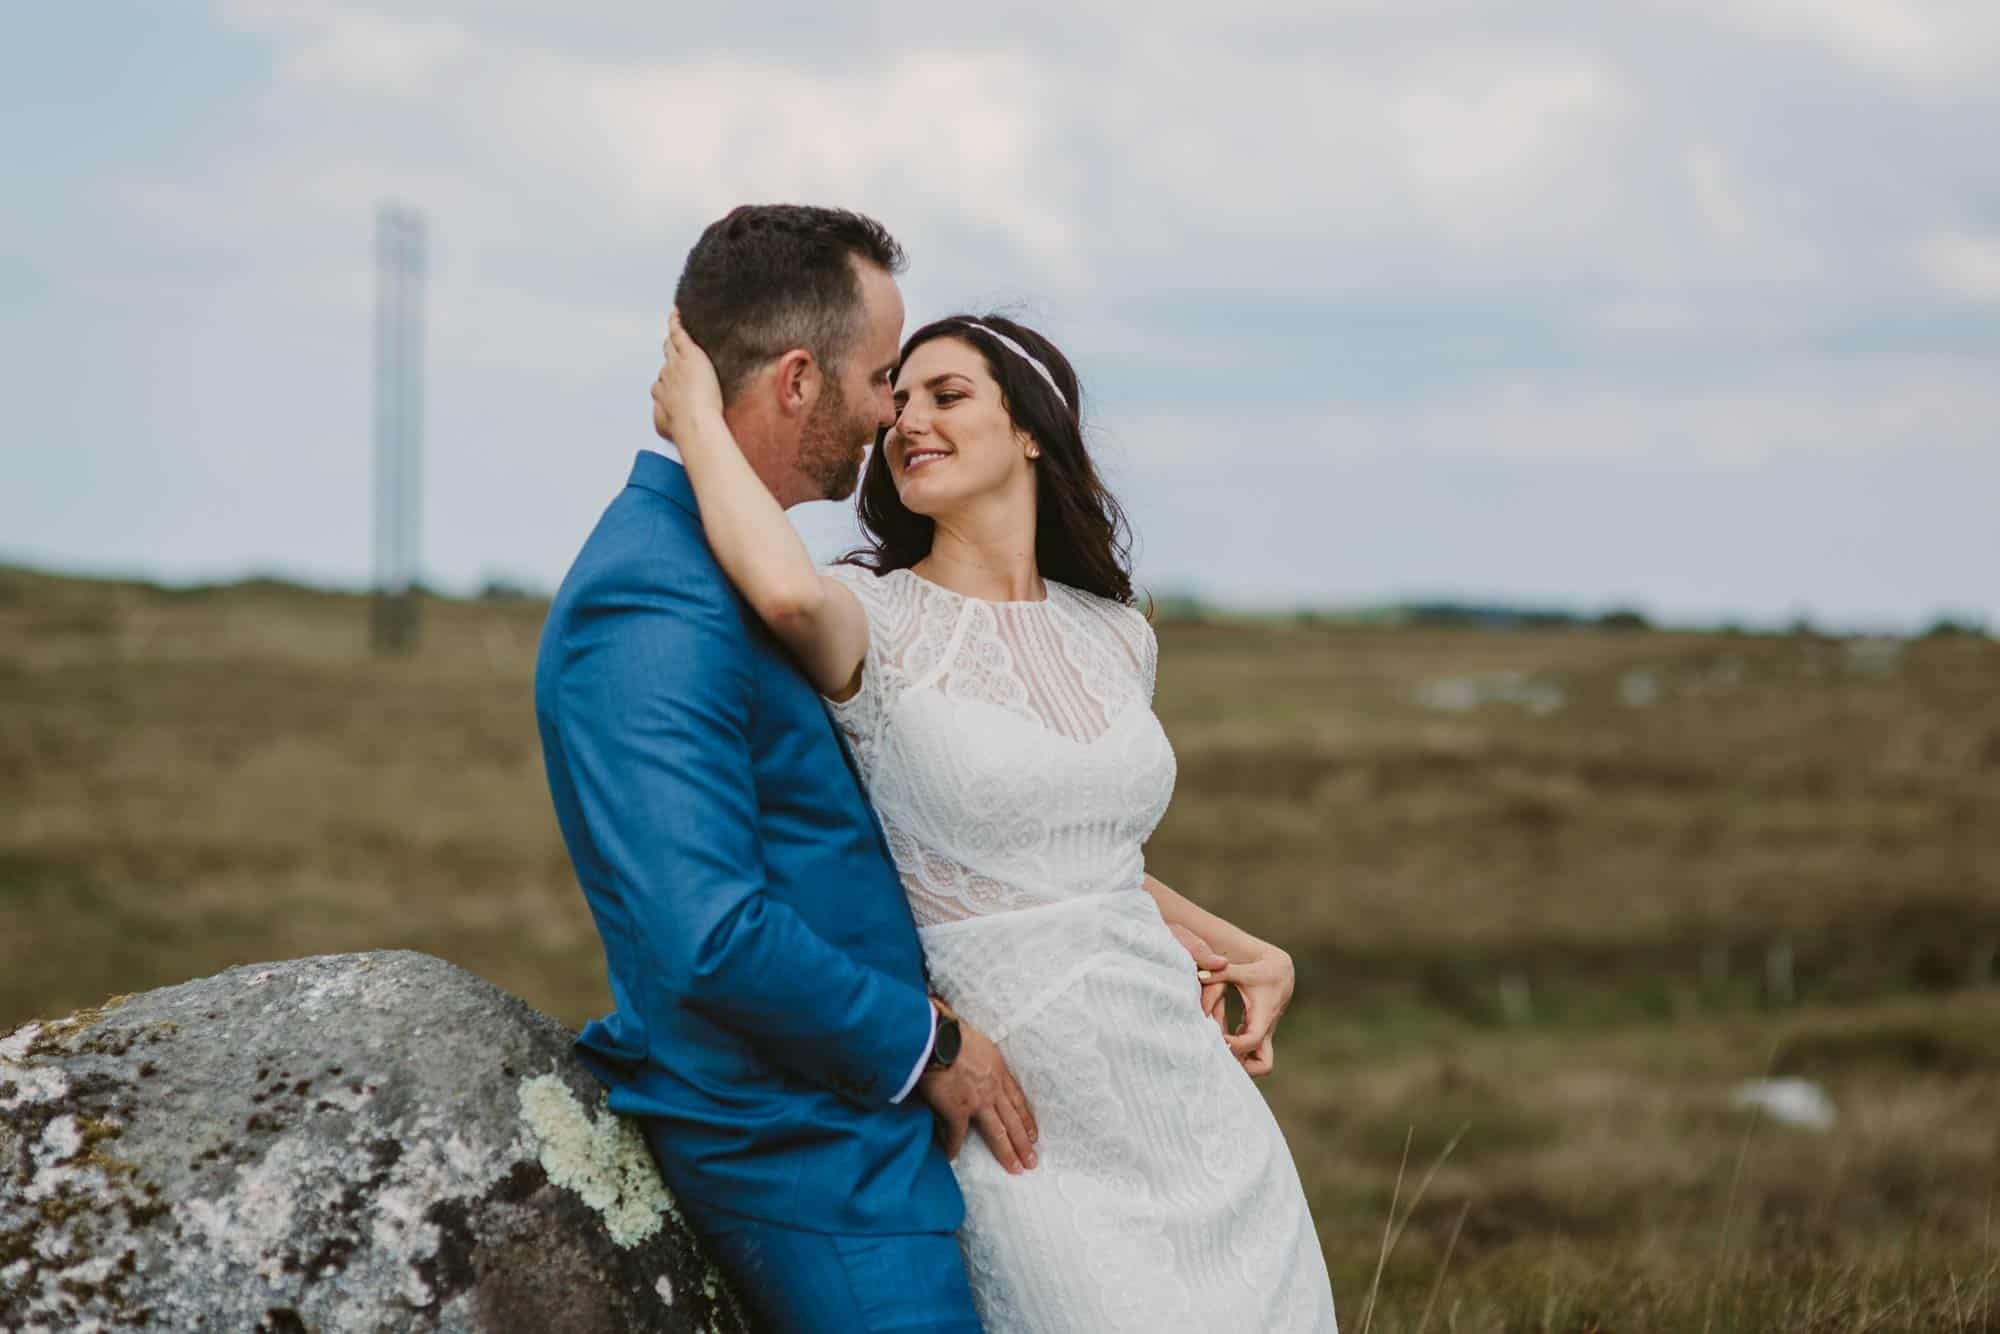 Elopement videographer Ireland, bide turns back to kiss groom